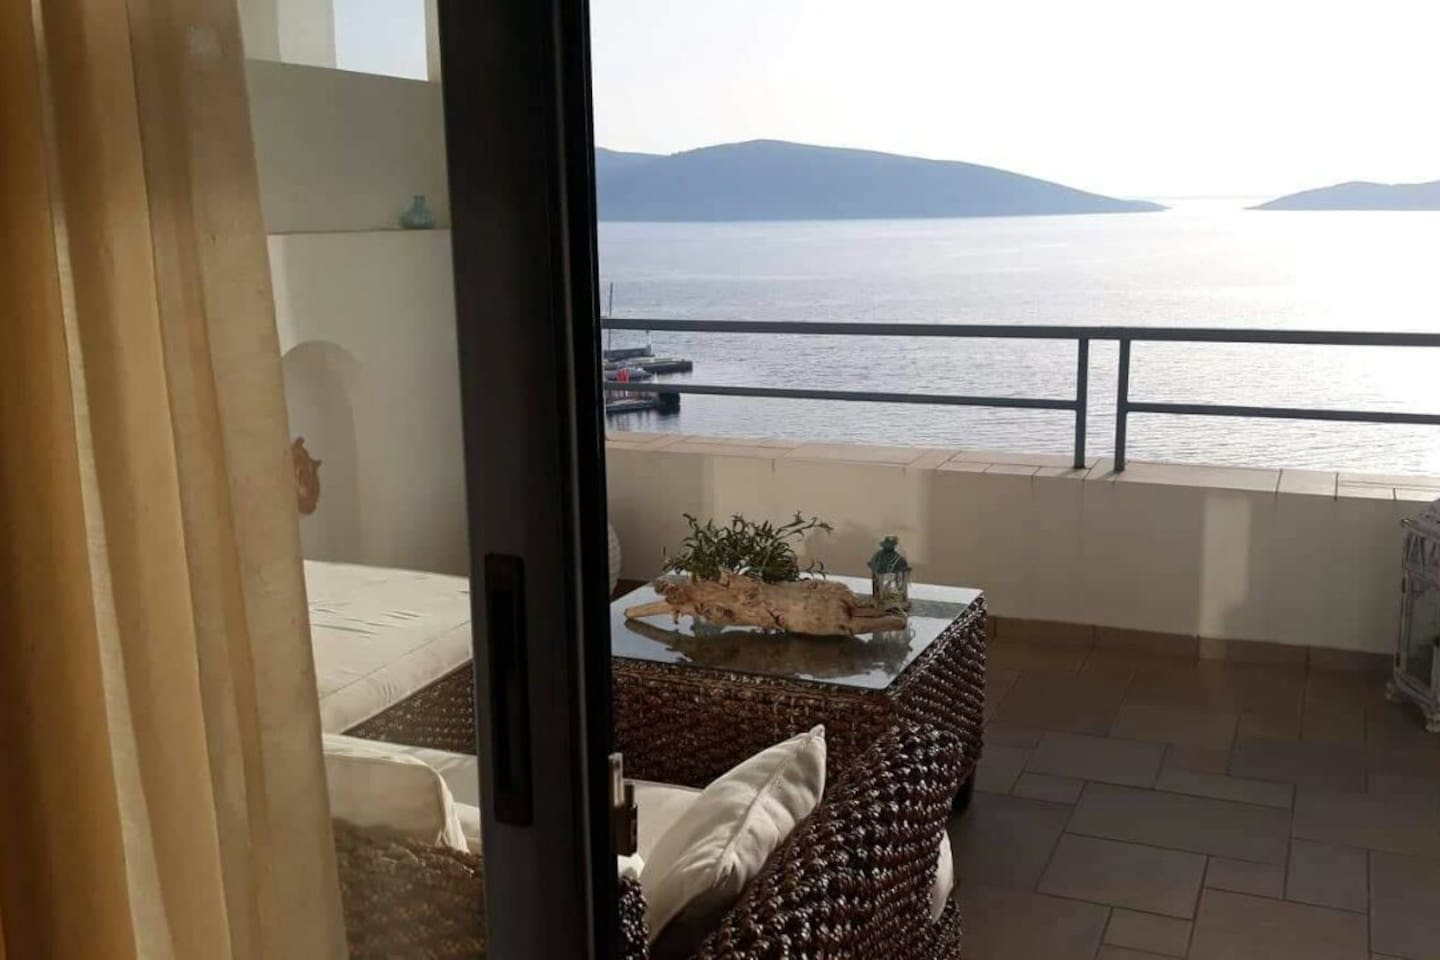 Kastro Hotel Balcony to Aegean Sea